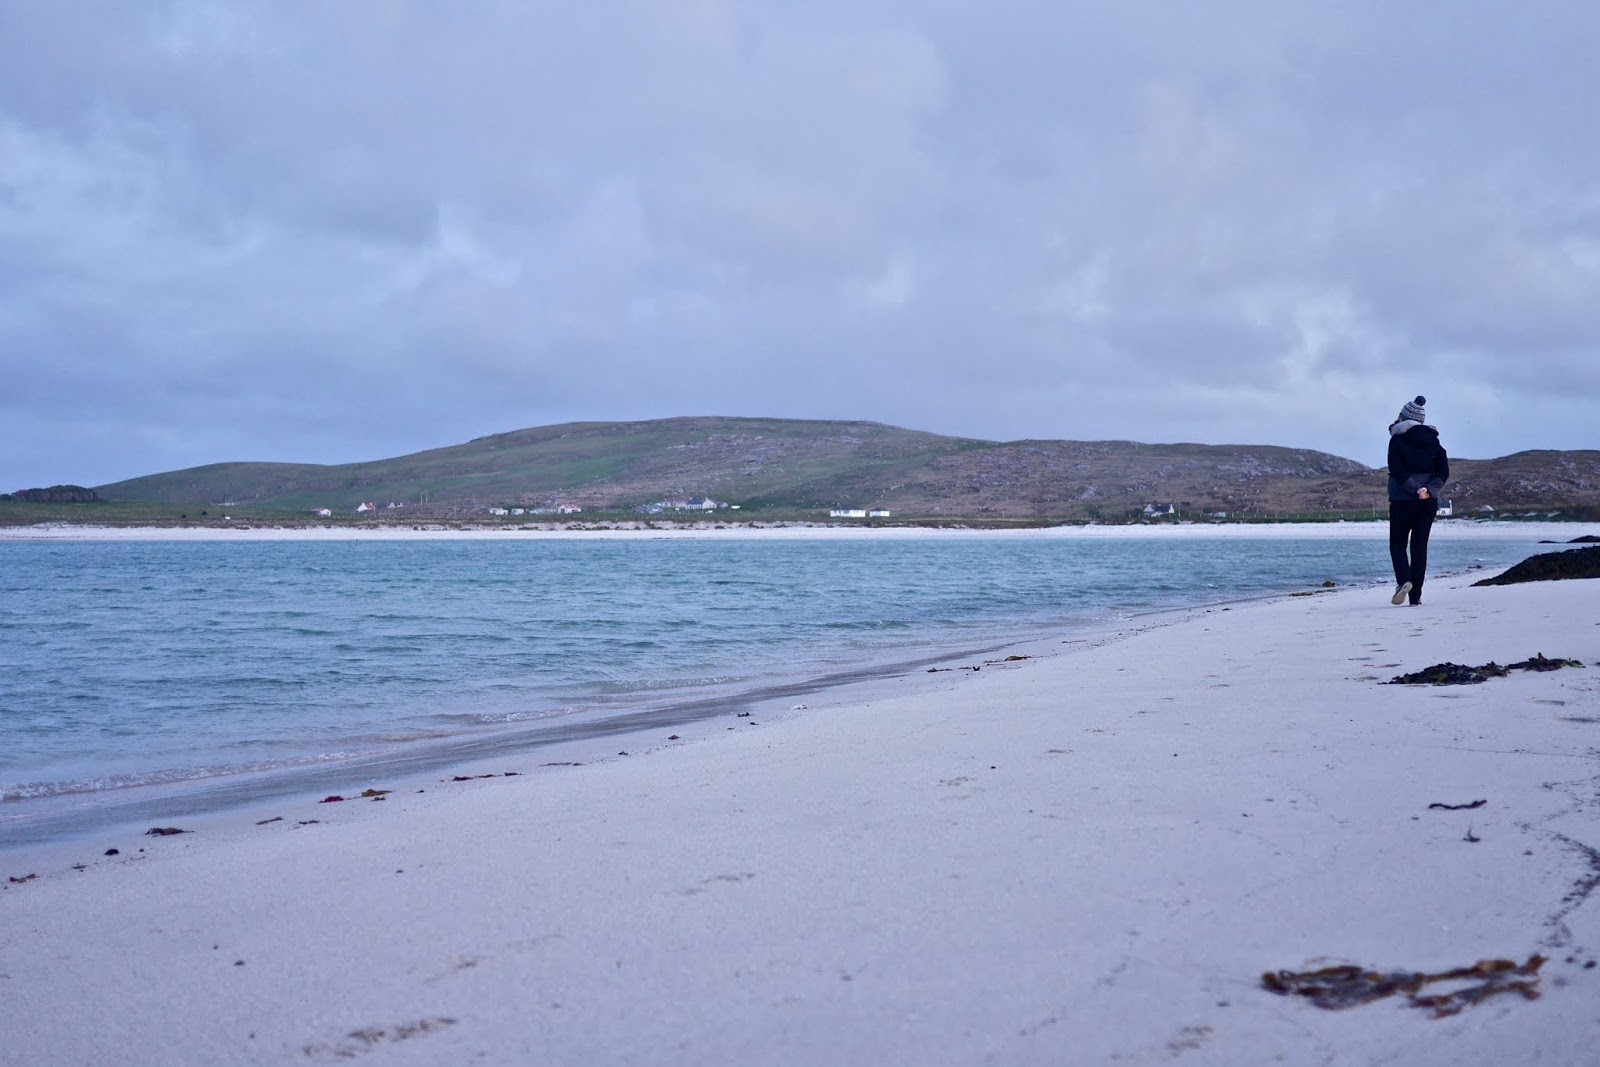 Scurrival campsite beach in Barra  by Cal McTravel of www.CalMcTraves.com